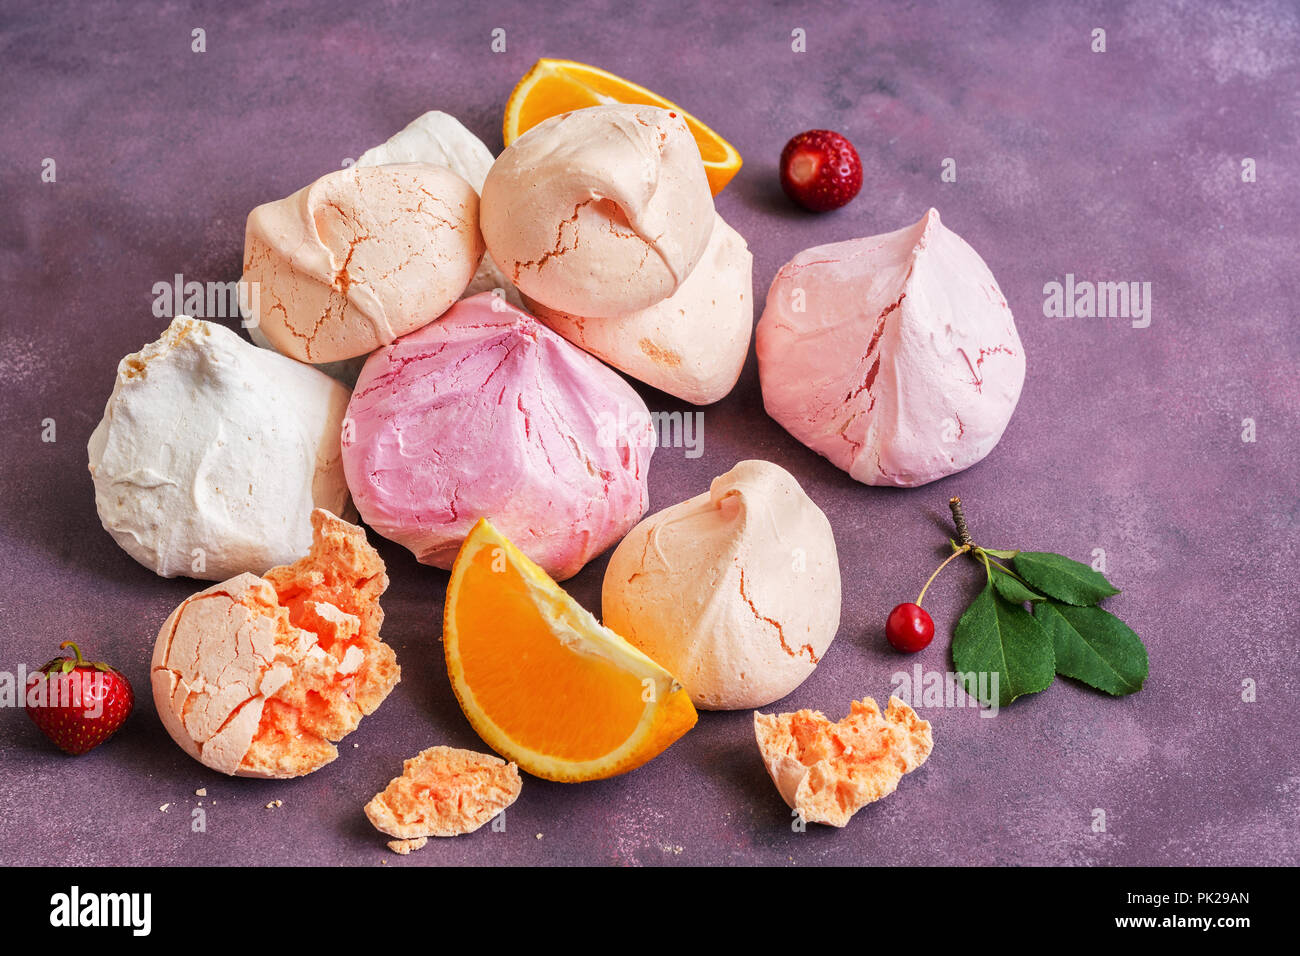 Multicolored meringue with strawberries, cherries and orange on a beautiful background. A lot of meringue, selective focus - Stock Image